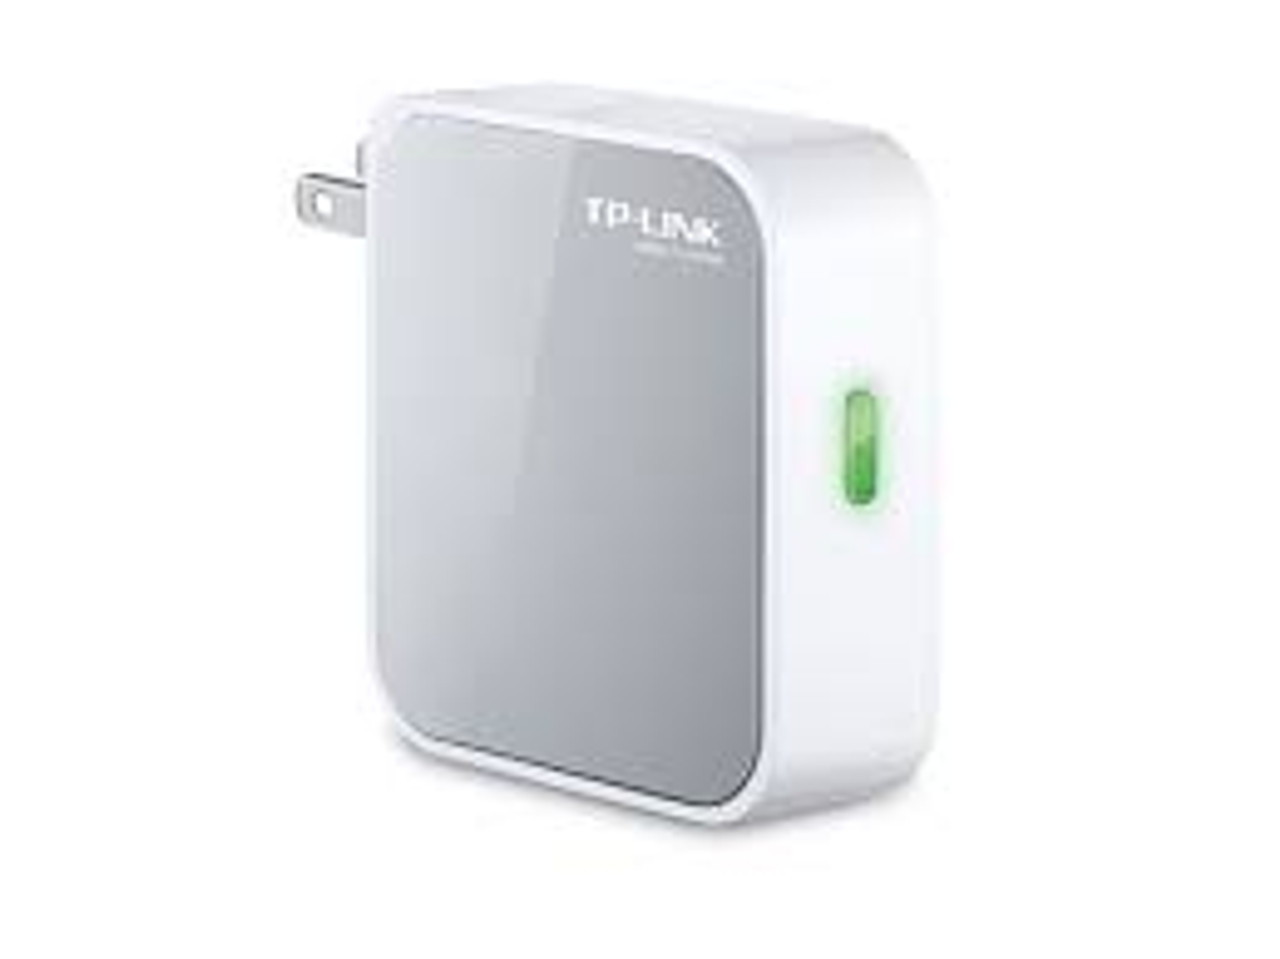 TP-Link N150 Wireless Wi-Fi Portable Router with Range Extender/Access  Point/Client/Bridge Modes (TL-WR700N)